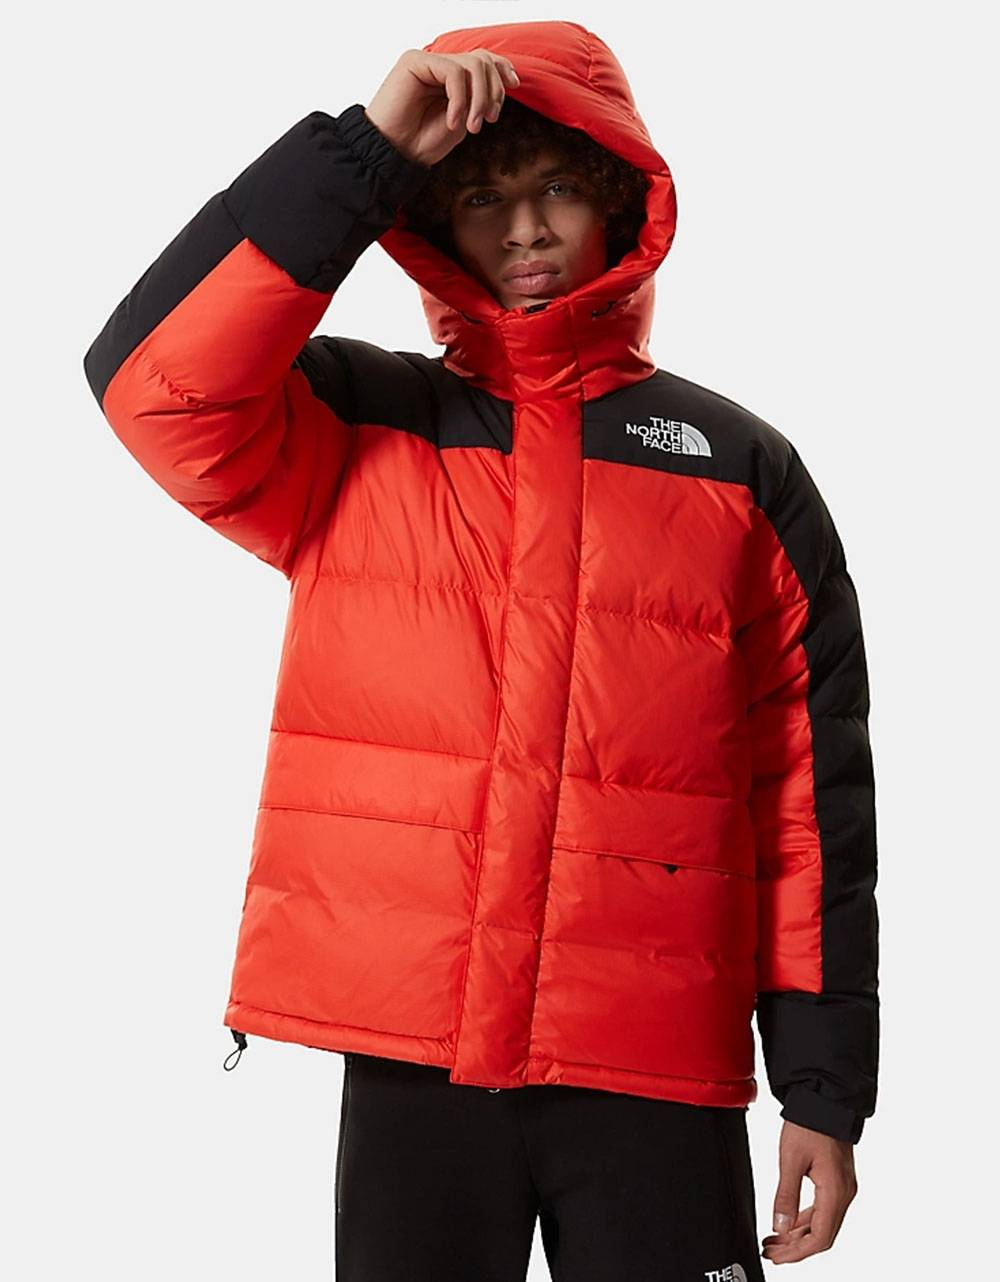 The North Face Himalayan down parka jacket - flare red THE NORTH FACE Bomber 379,00€